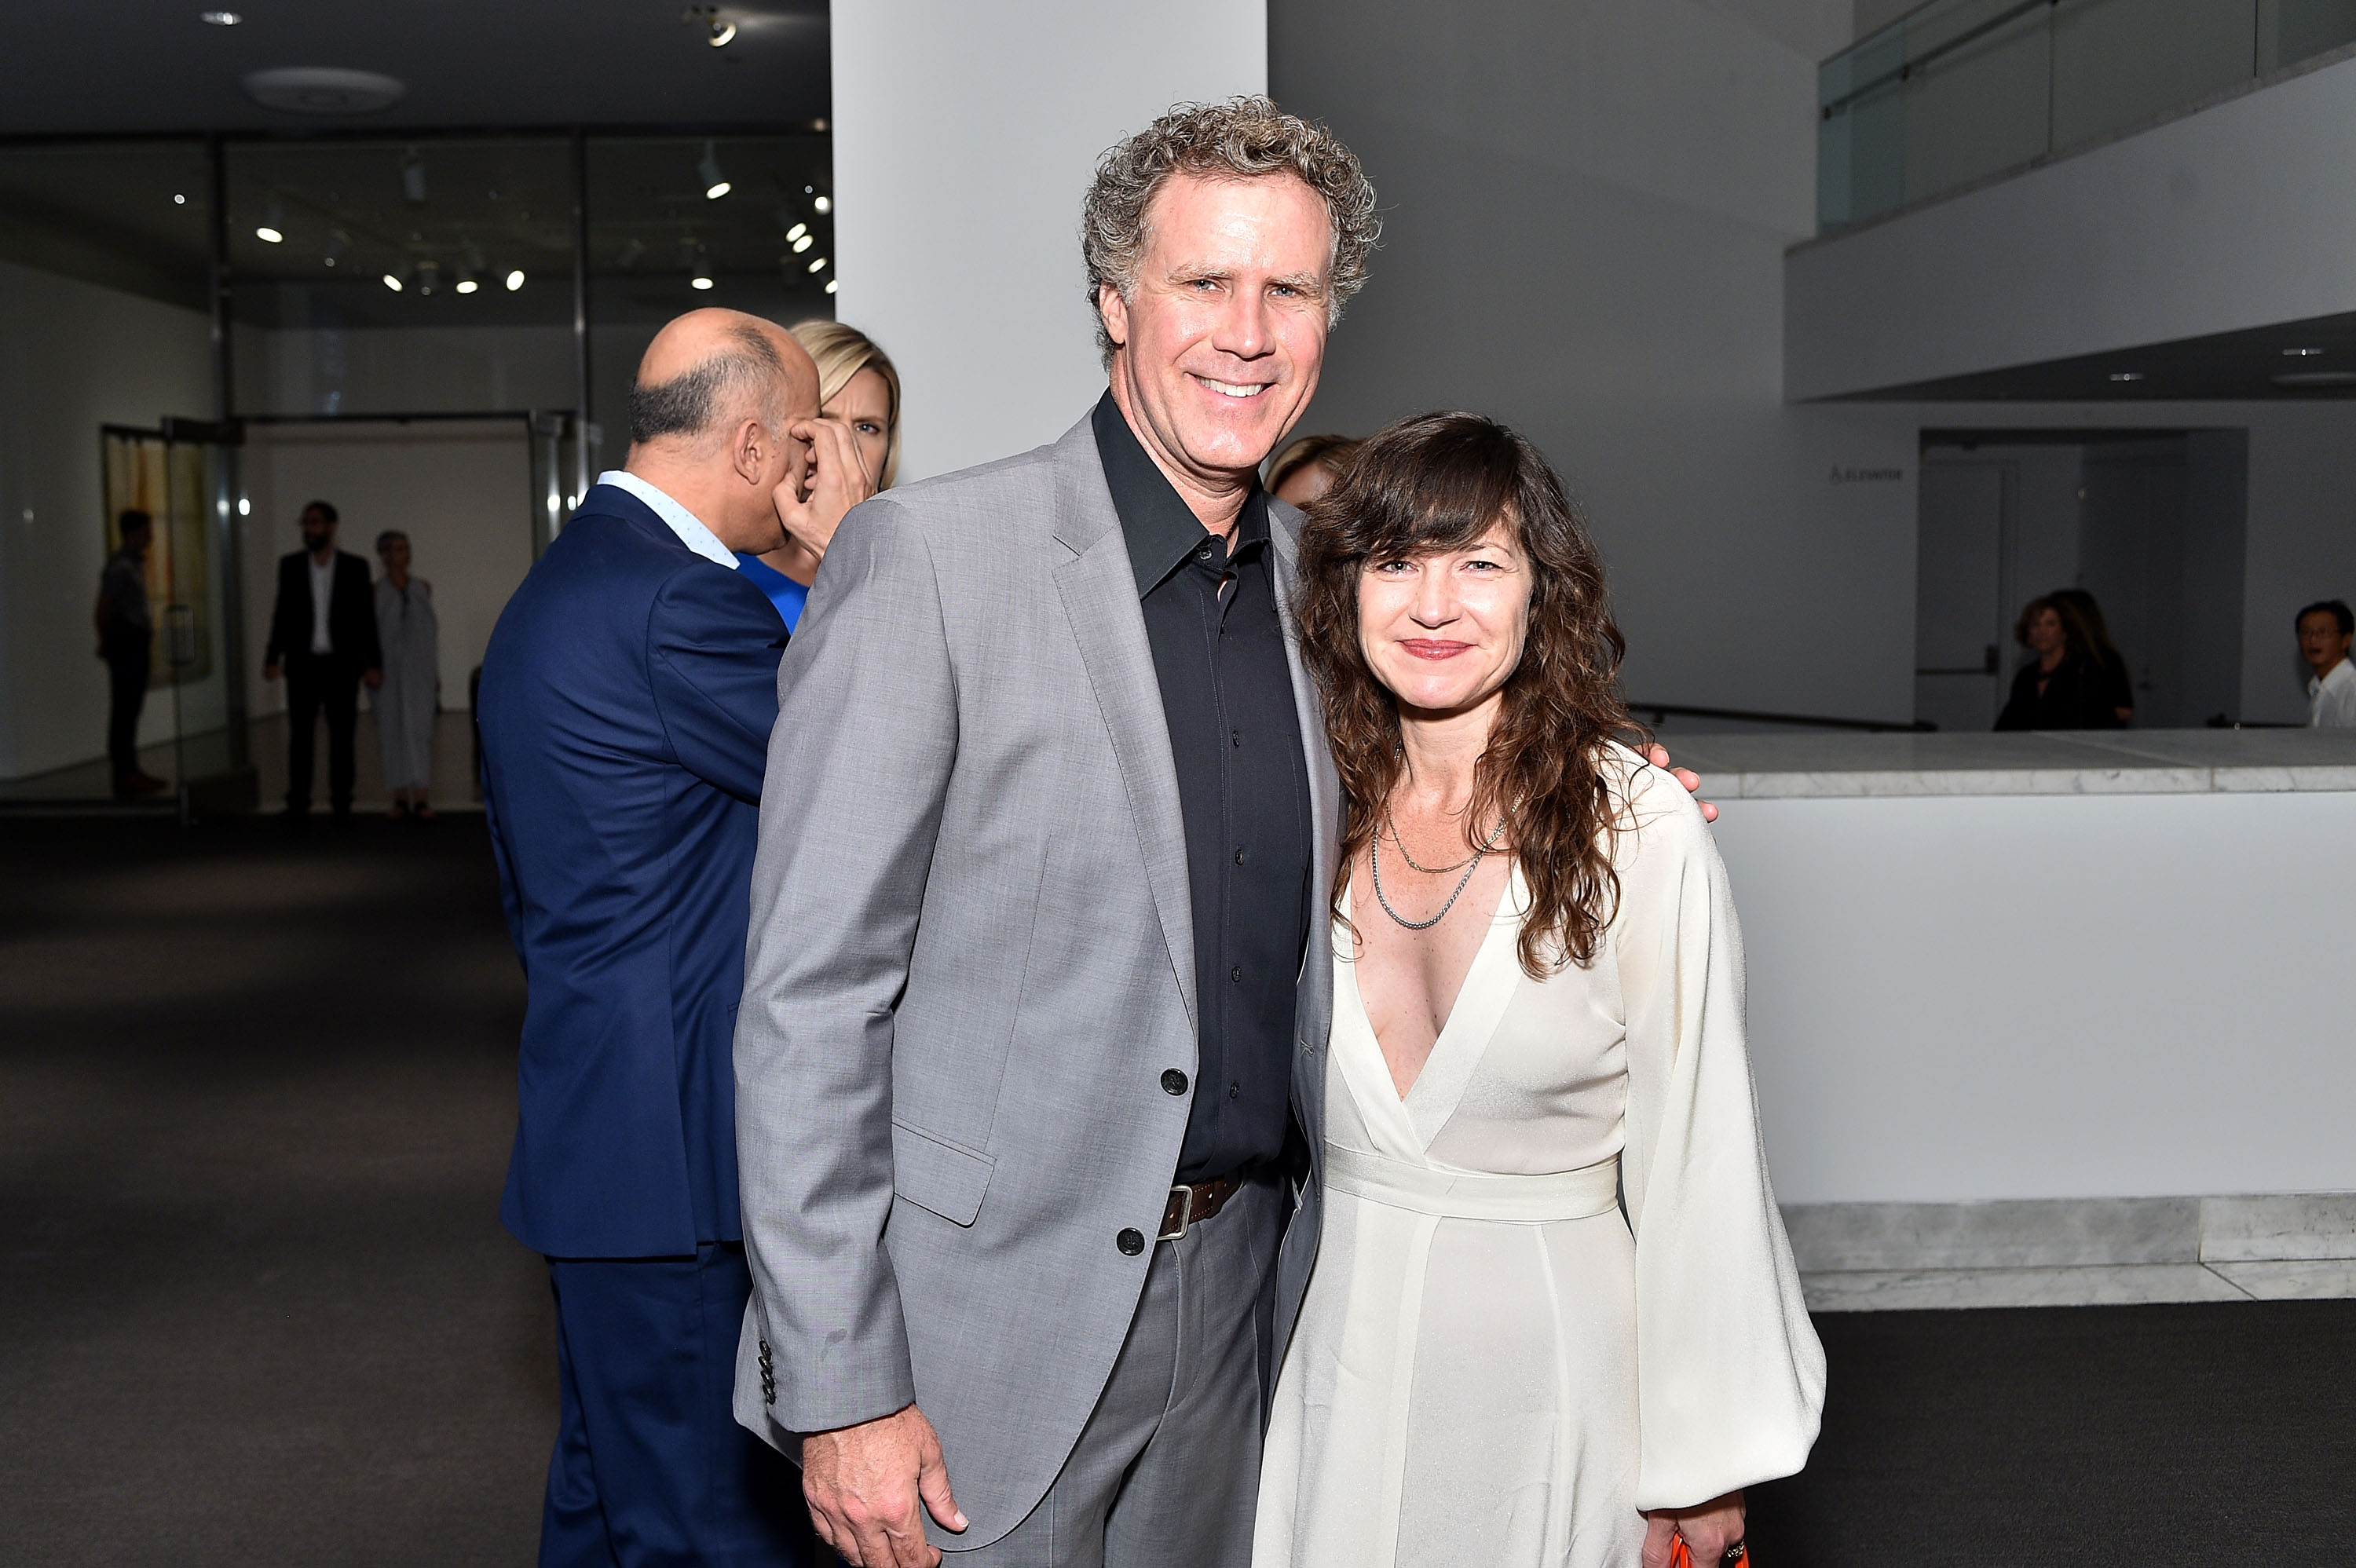 Will Ferrell auctions role in new movie for charity Will Ferrell auctions role in new movie for charity new picture